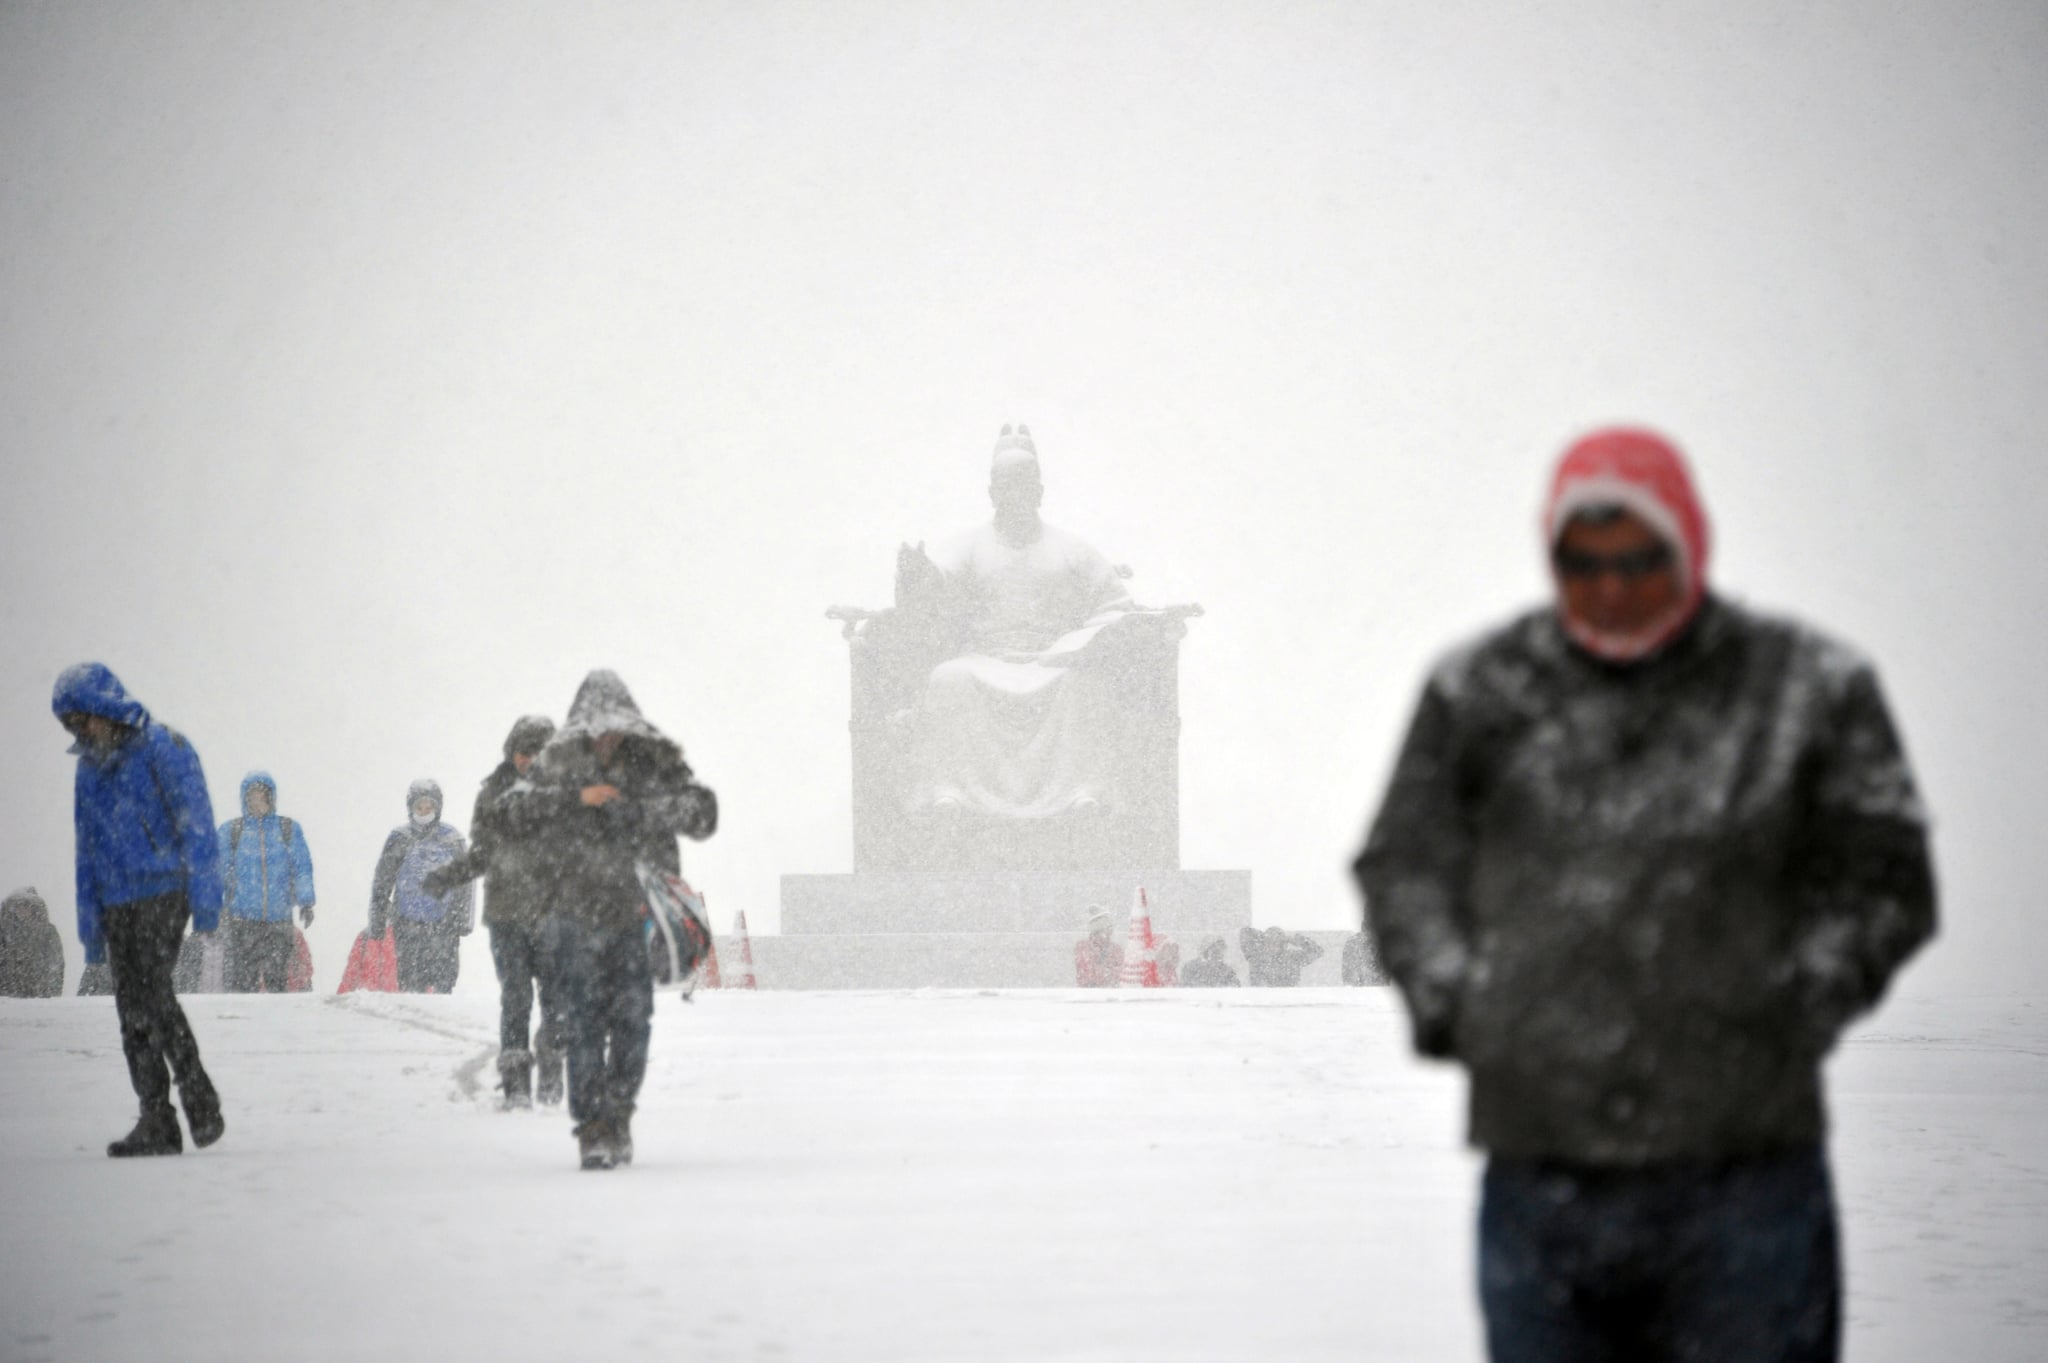 Seoul, South Korea, saw subzero temperatures and heavy snowstorms in mid-December.